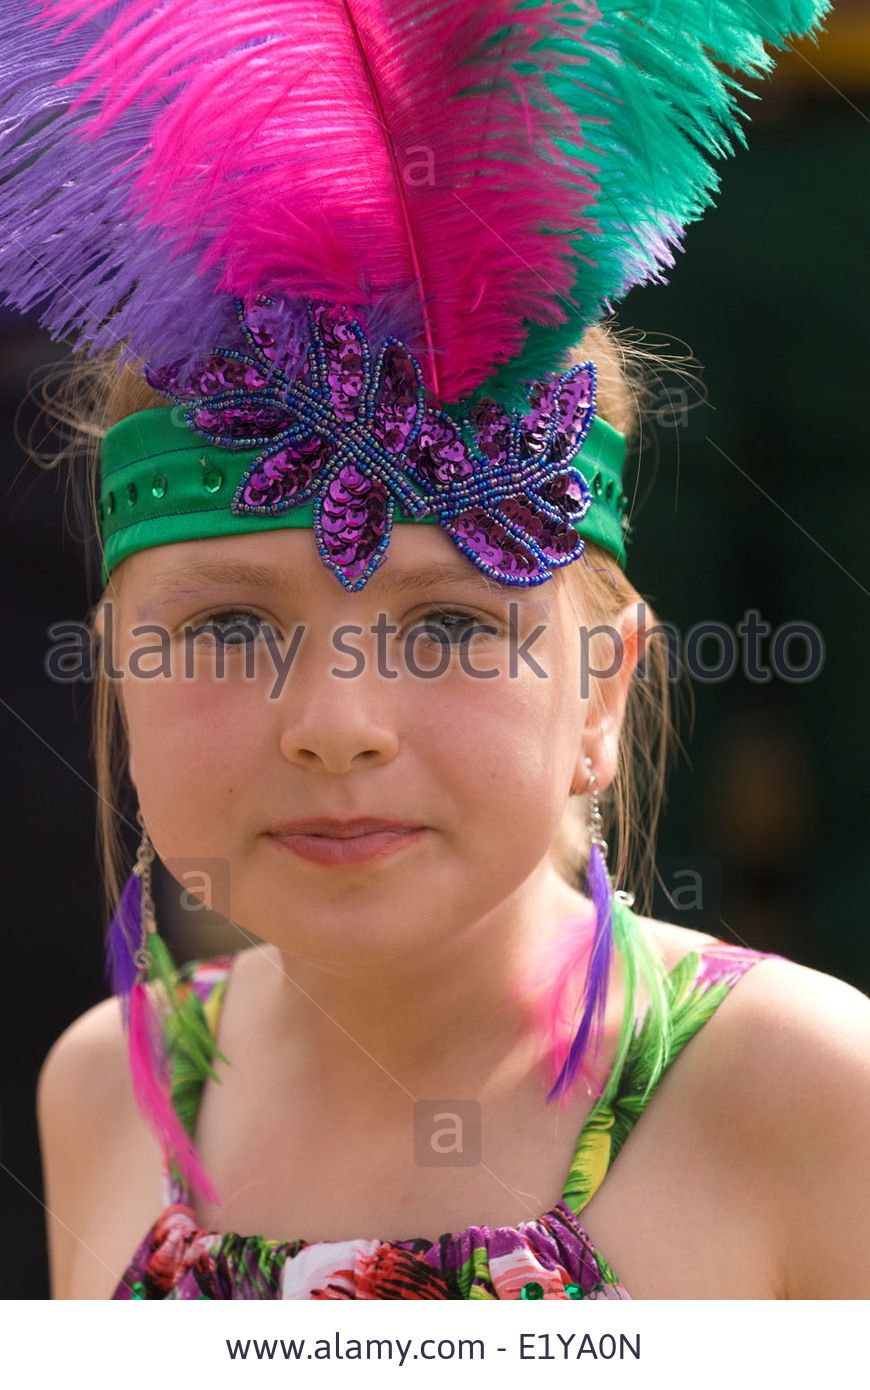 8 year old girl wearing Brazilian/carnival costume at a